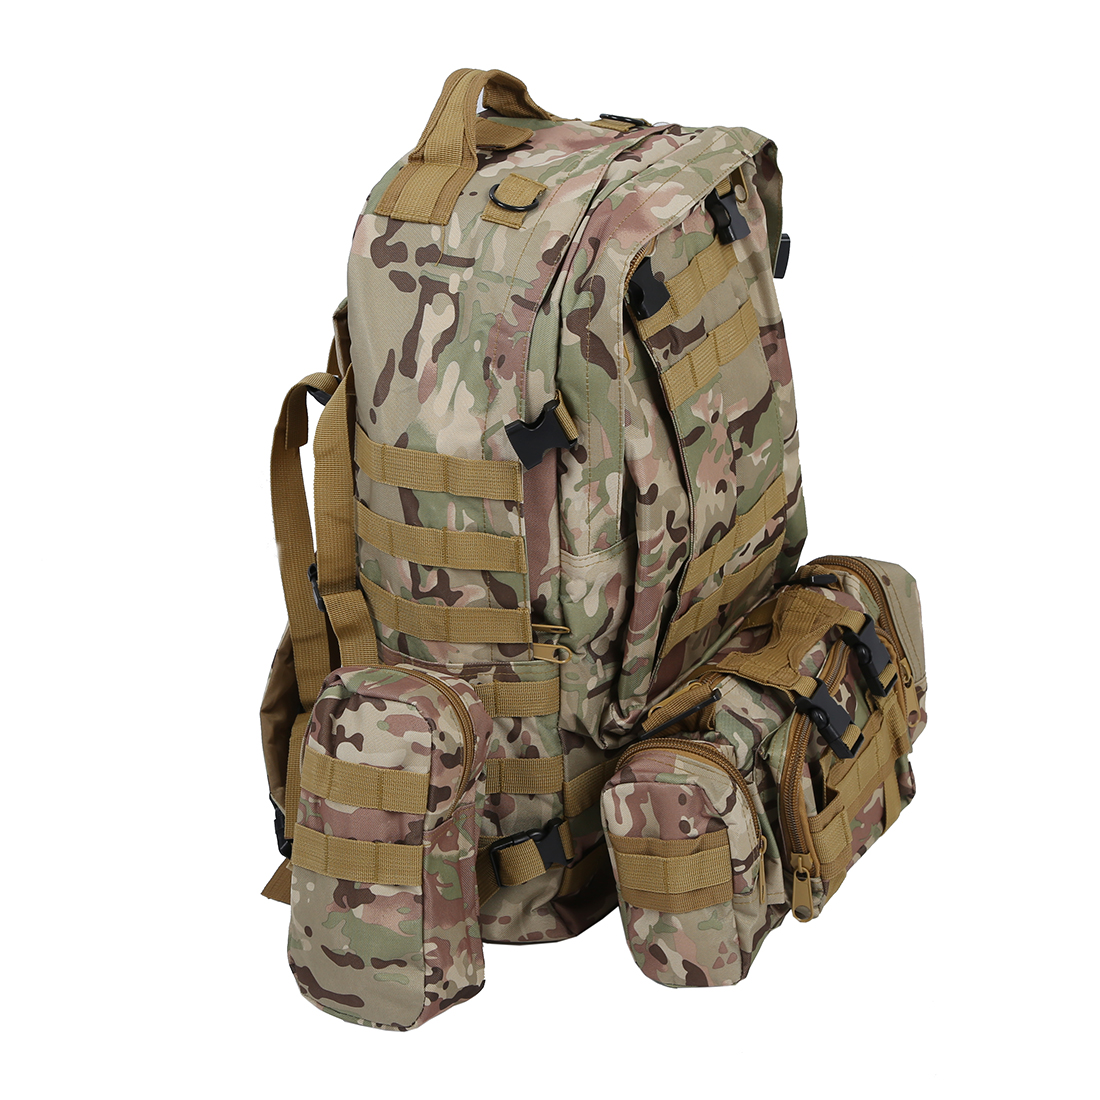 50L 3Day Assault Tactical Outdoor Military Rucksacks Backpack Camping bag 9 colors new 50l molle high capacity tactical backpack assault outdoor military rucksacks backpack camping hunting bag